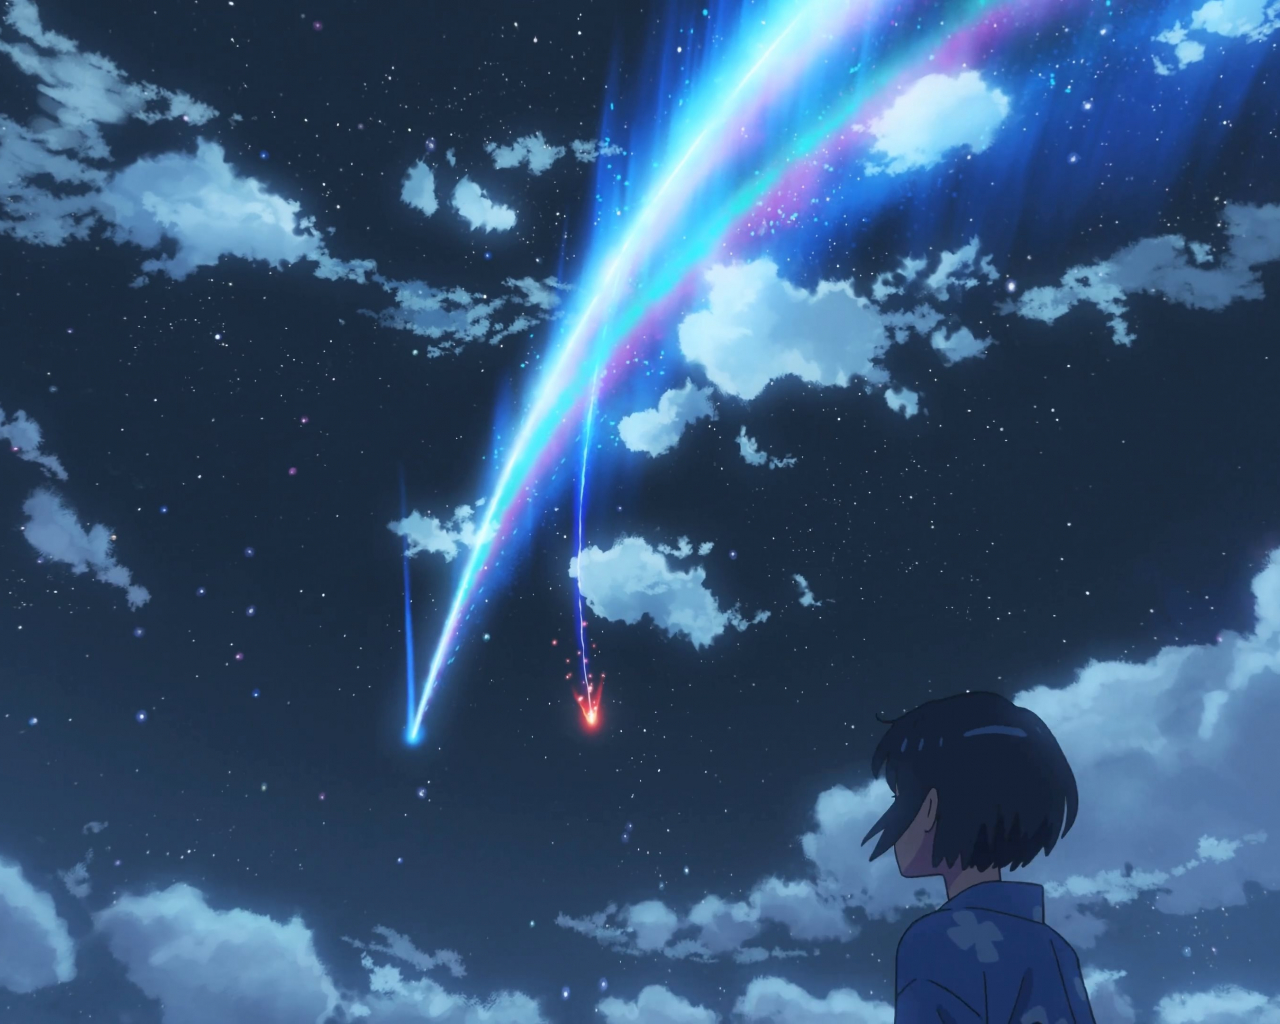 Free Download Oc Kimi No Nawa Your Name Meteor Mitsuha 4k By Total Chuck 3840x2160 For Your Desktop Mobile Tablet Explore 46 Anime 4k Your Name Wallpapers Anime 4k